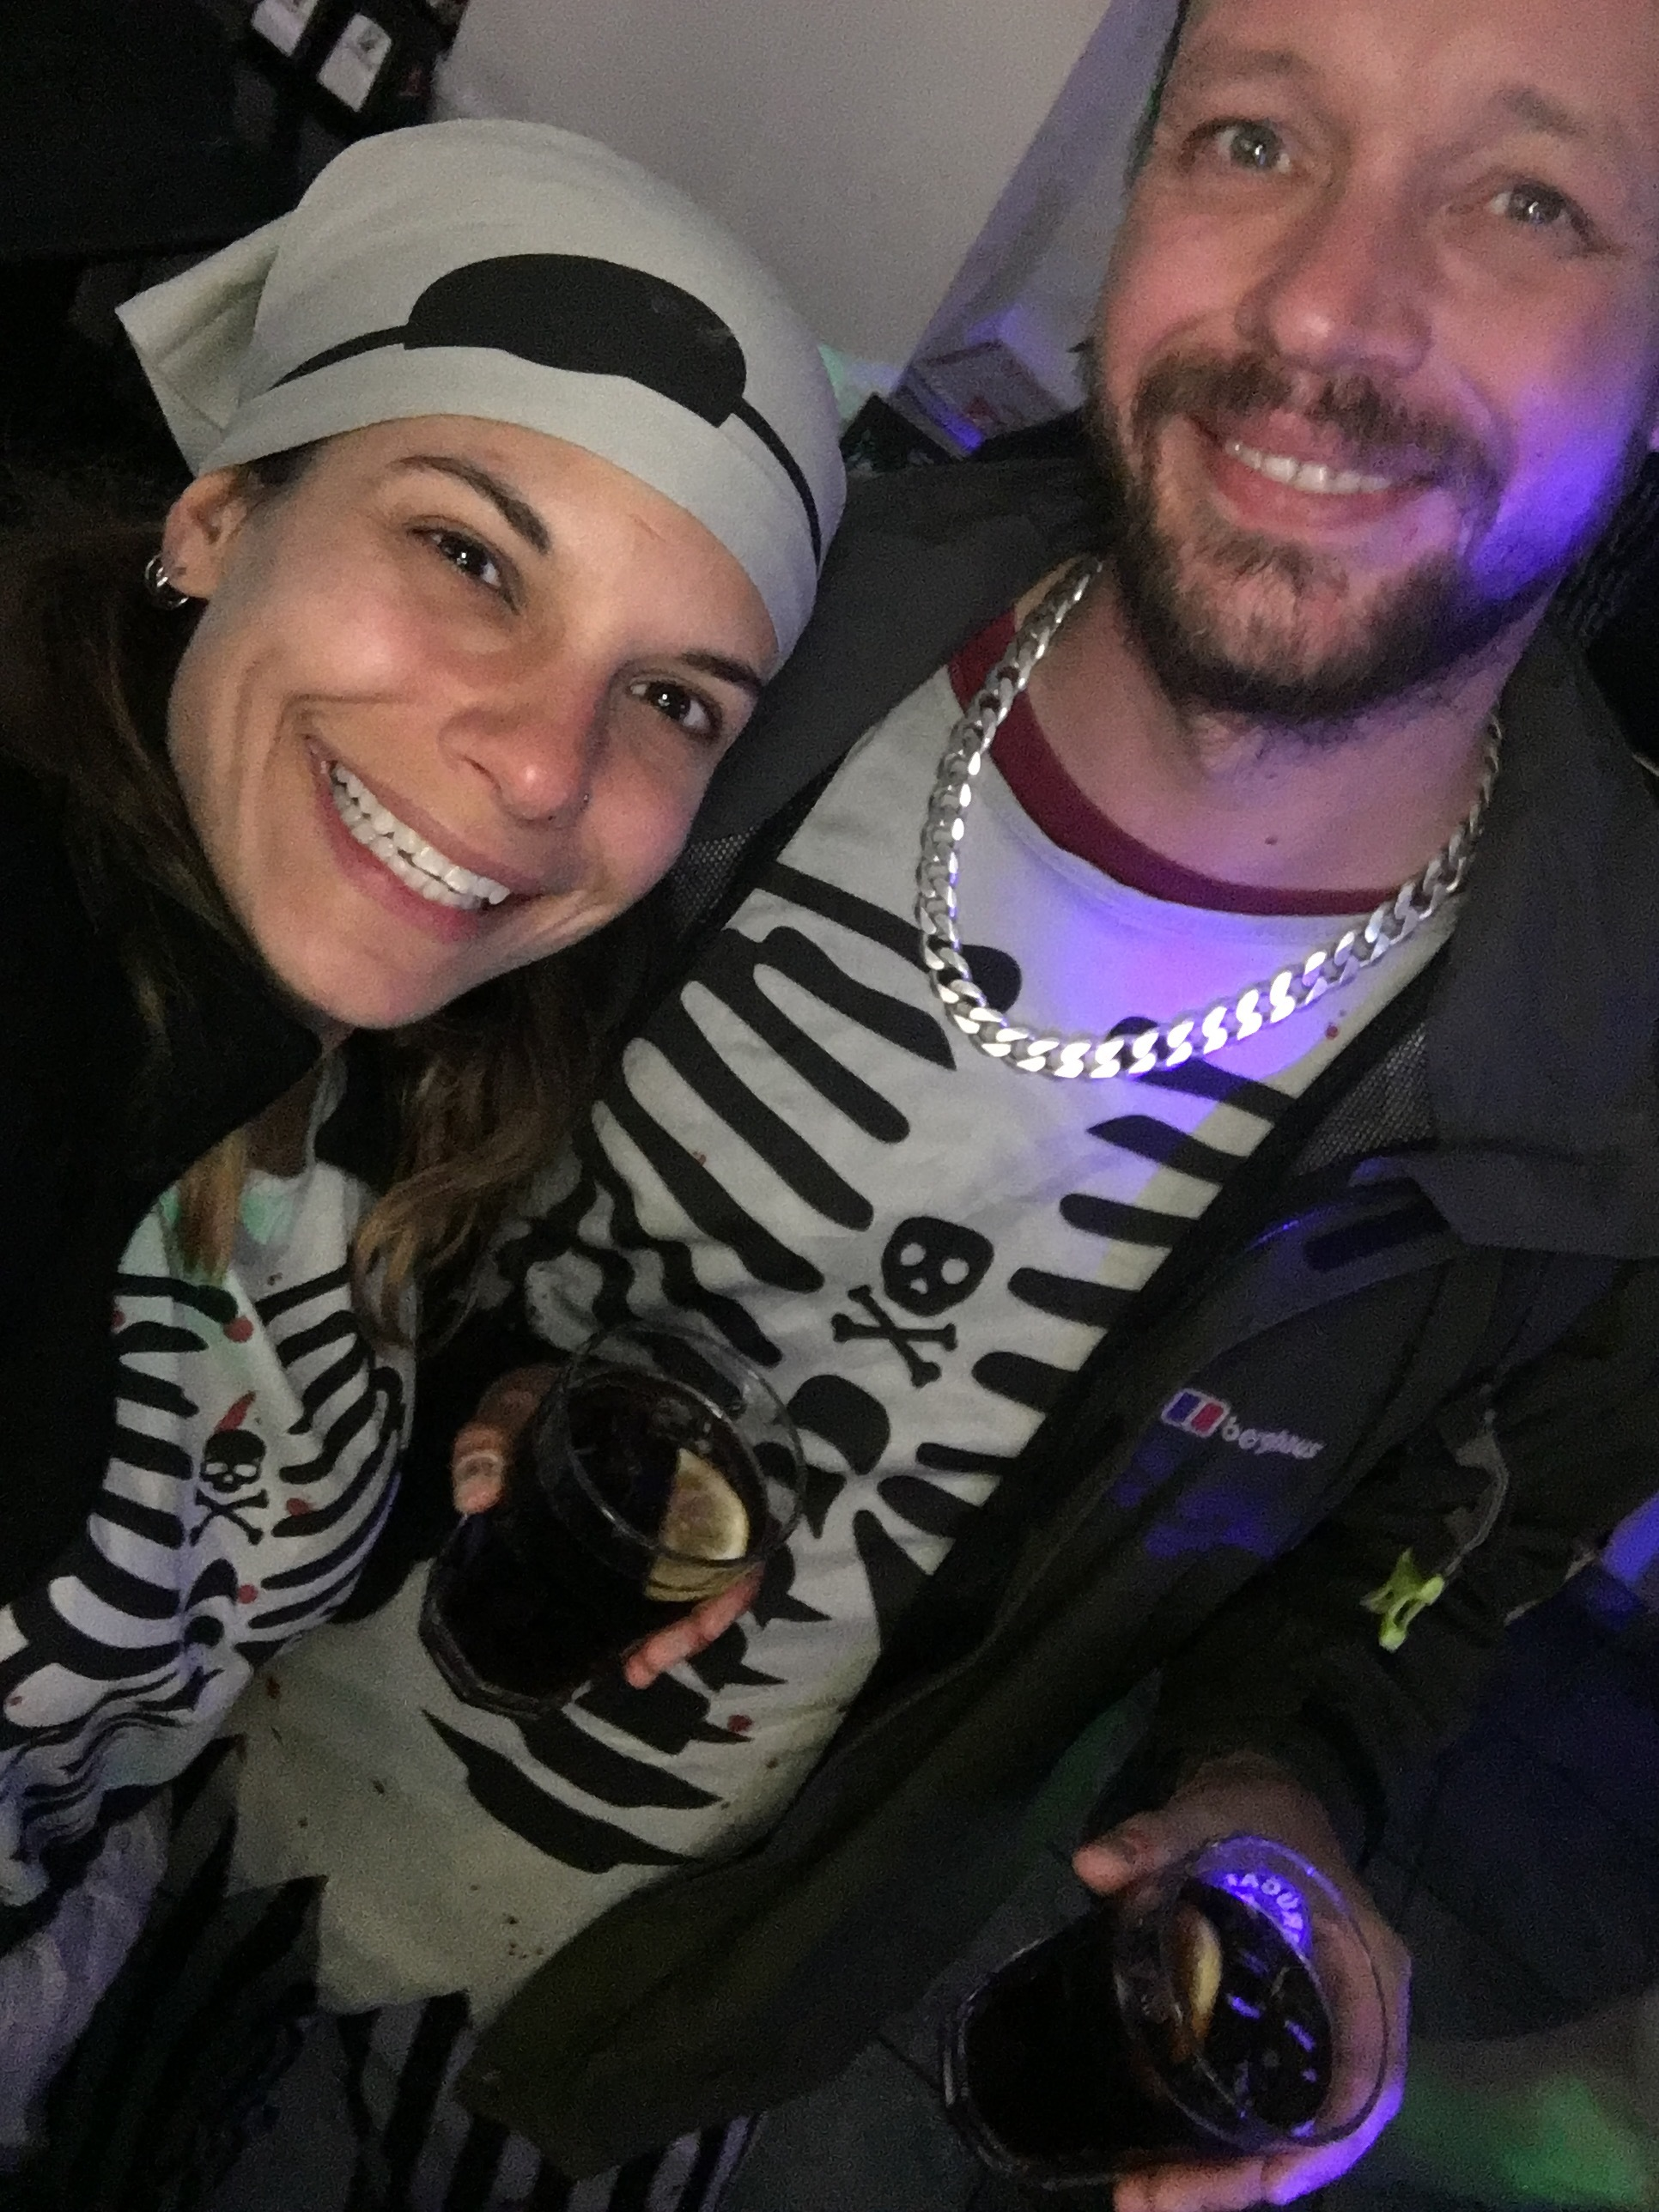 We dressed up as zombie pirates for halloween.